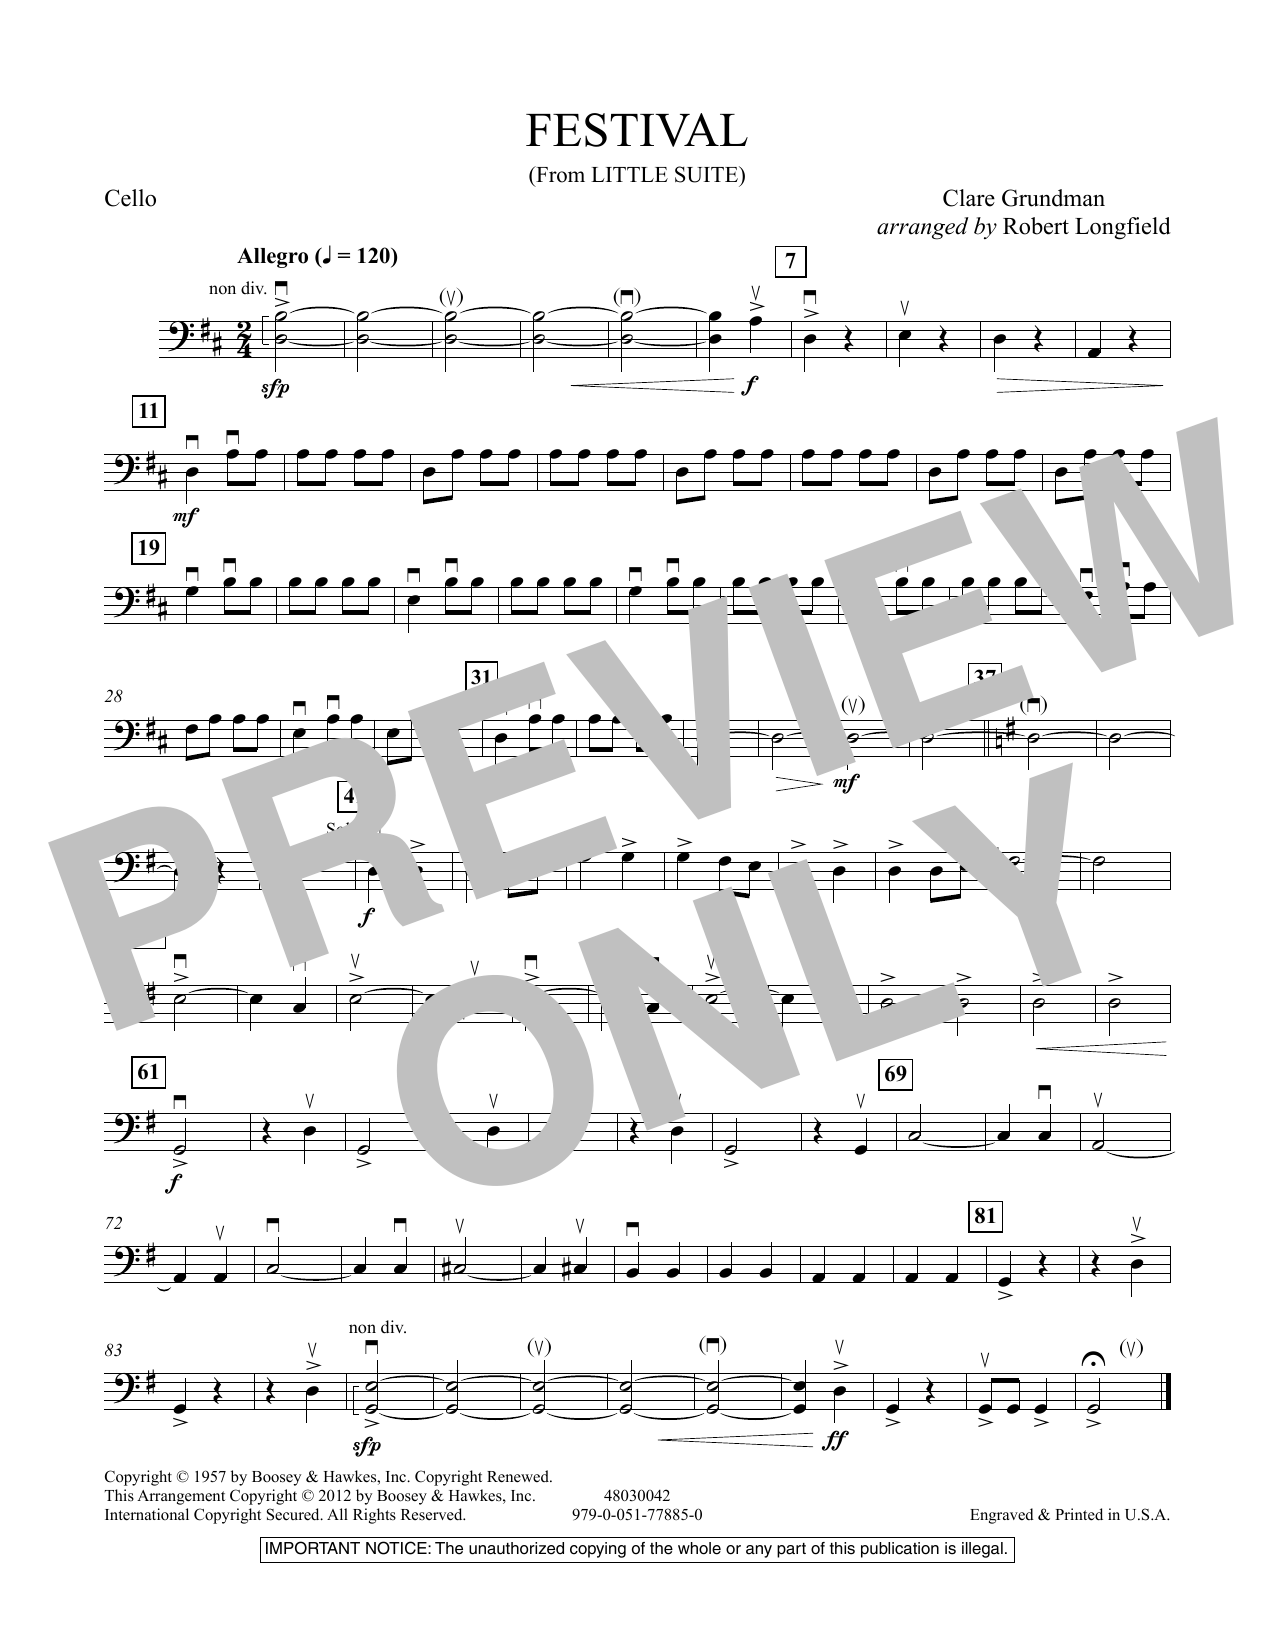 Festival (from Little Suite) - Cello Sheet Music